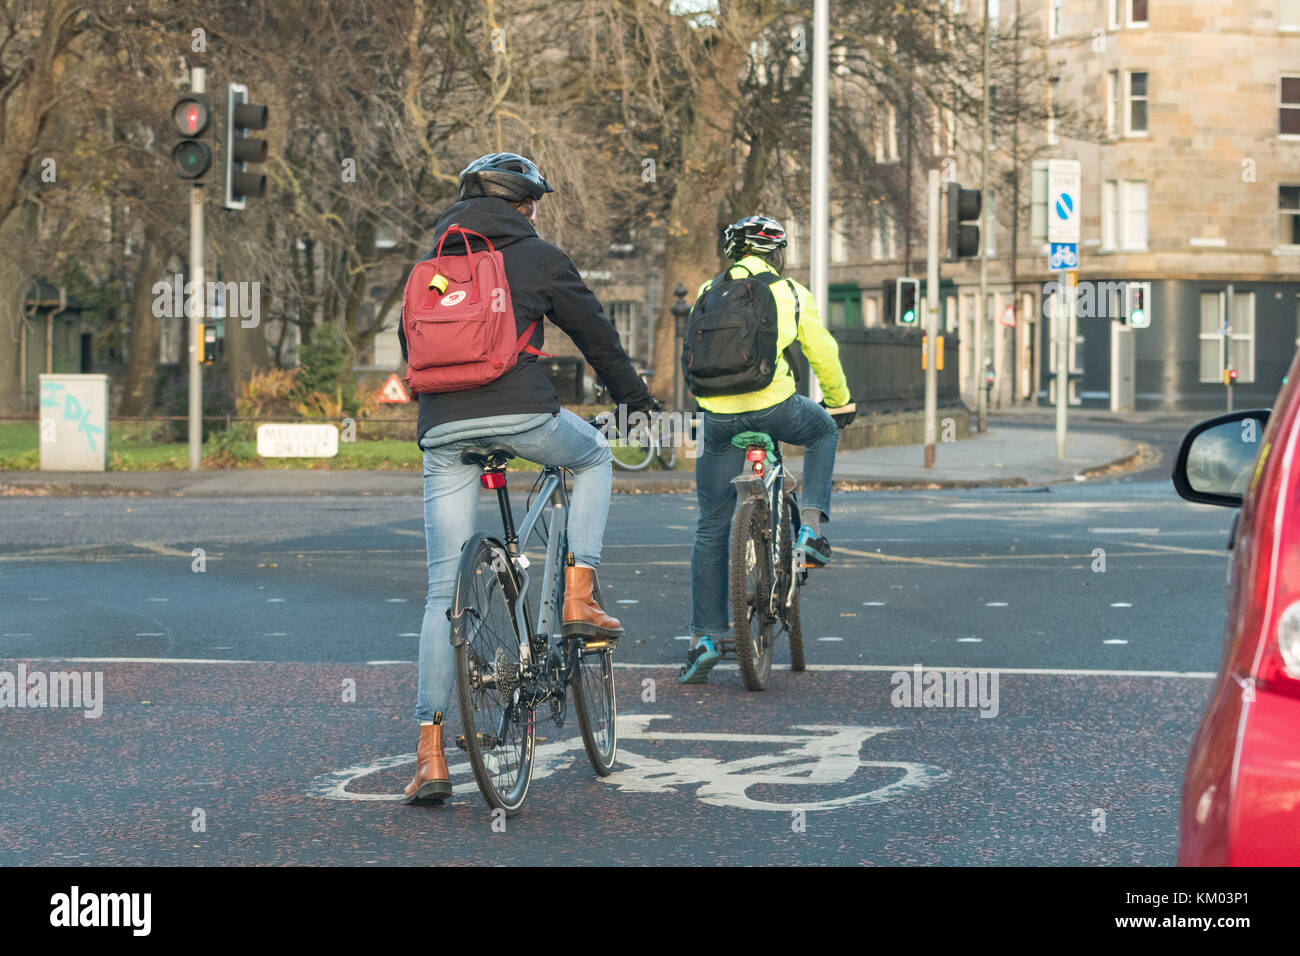 cyclists using bike box with advanced stop line on road at traffic lights in Edinburgh city centre, Scotland, UK - Stock Image